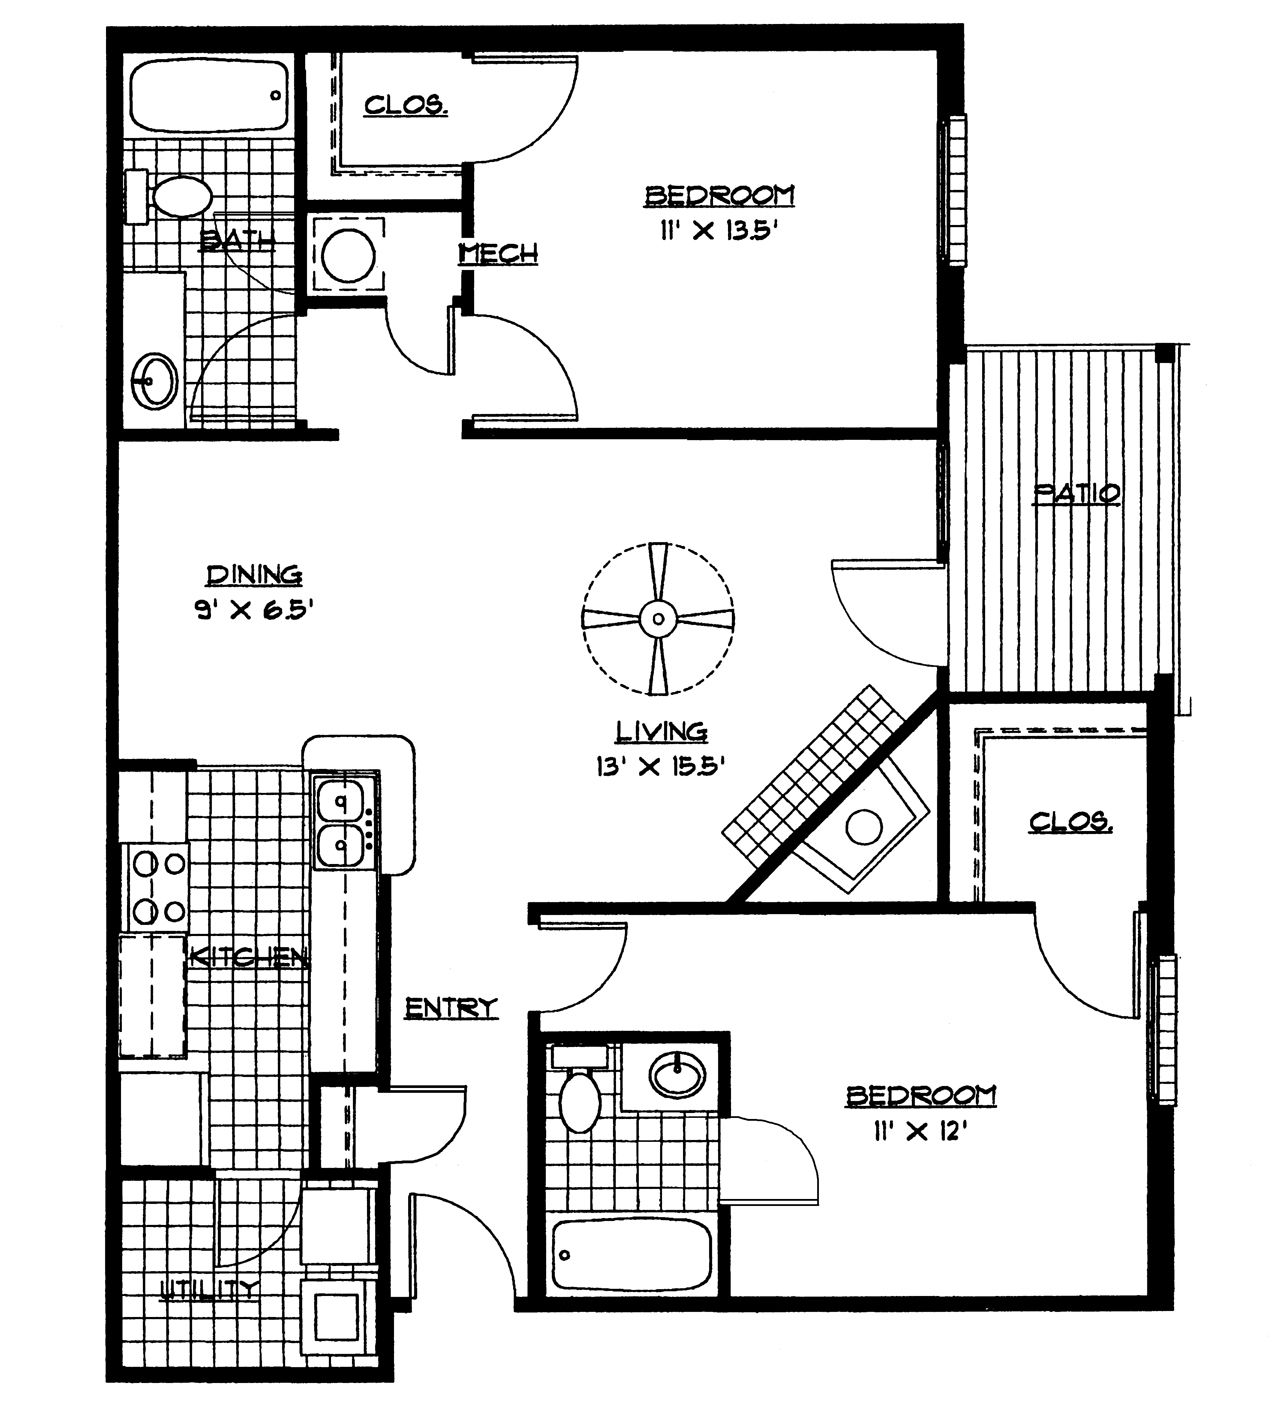 small house floor plans 2 bedrooms bedroom floor plan download small house floor plans 2 bedrooms bedroom floor plan download printable pdf